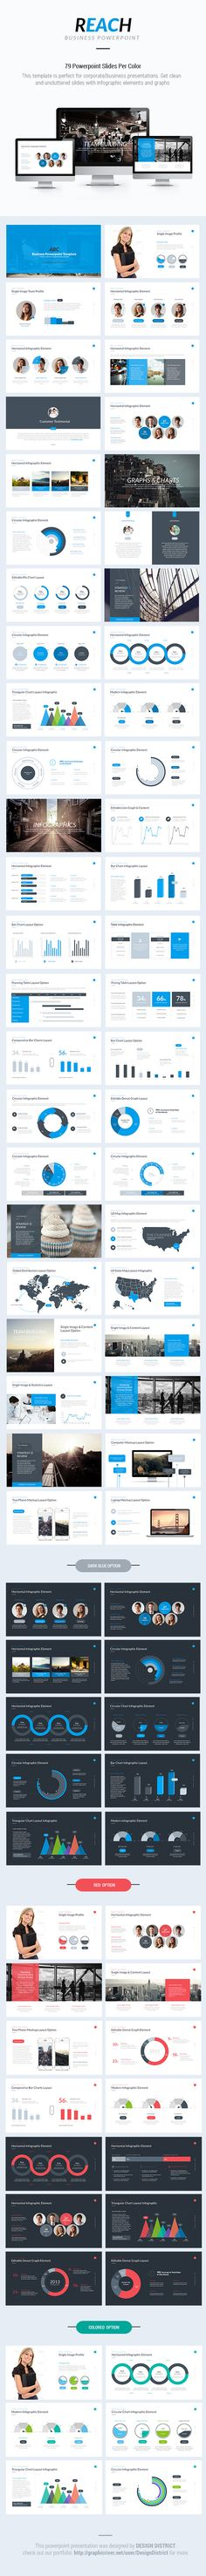 Business PowerPoint Template / Theme / Presentation / Slides / Background / Power Point #powerpoint #template #theme